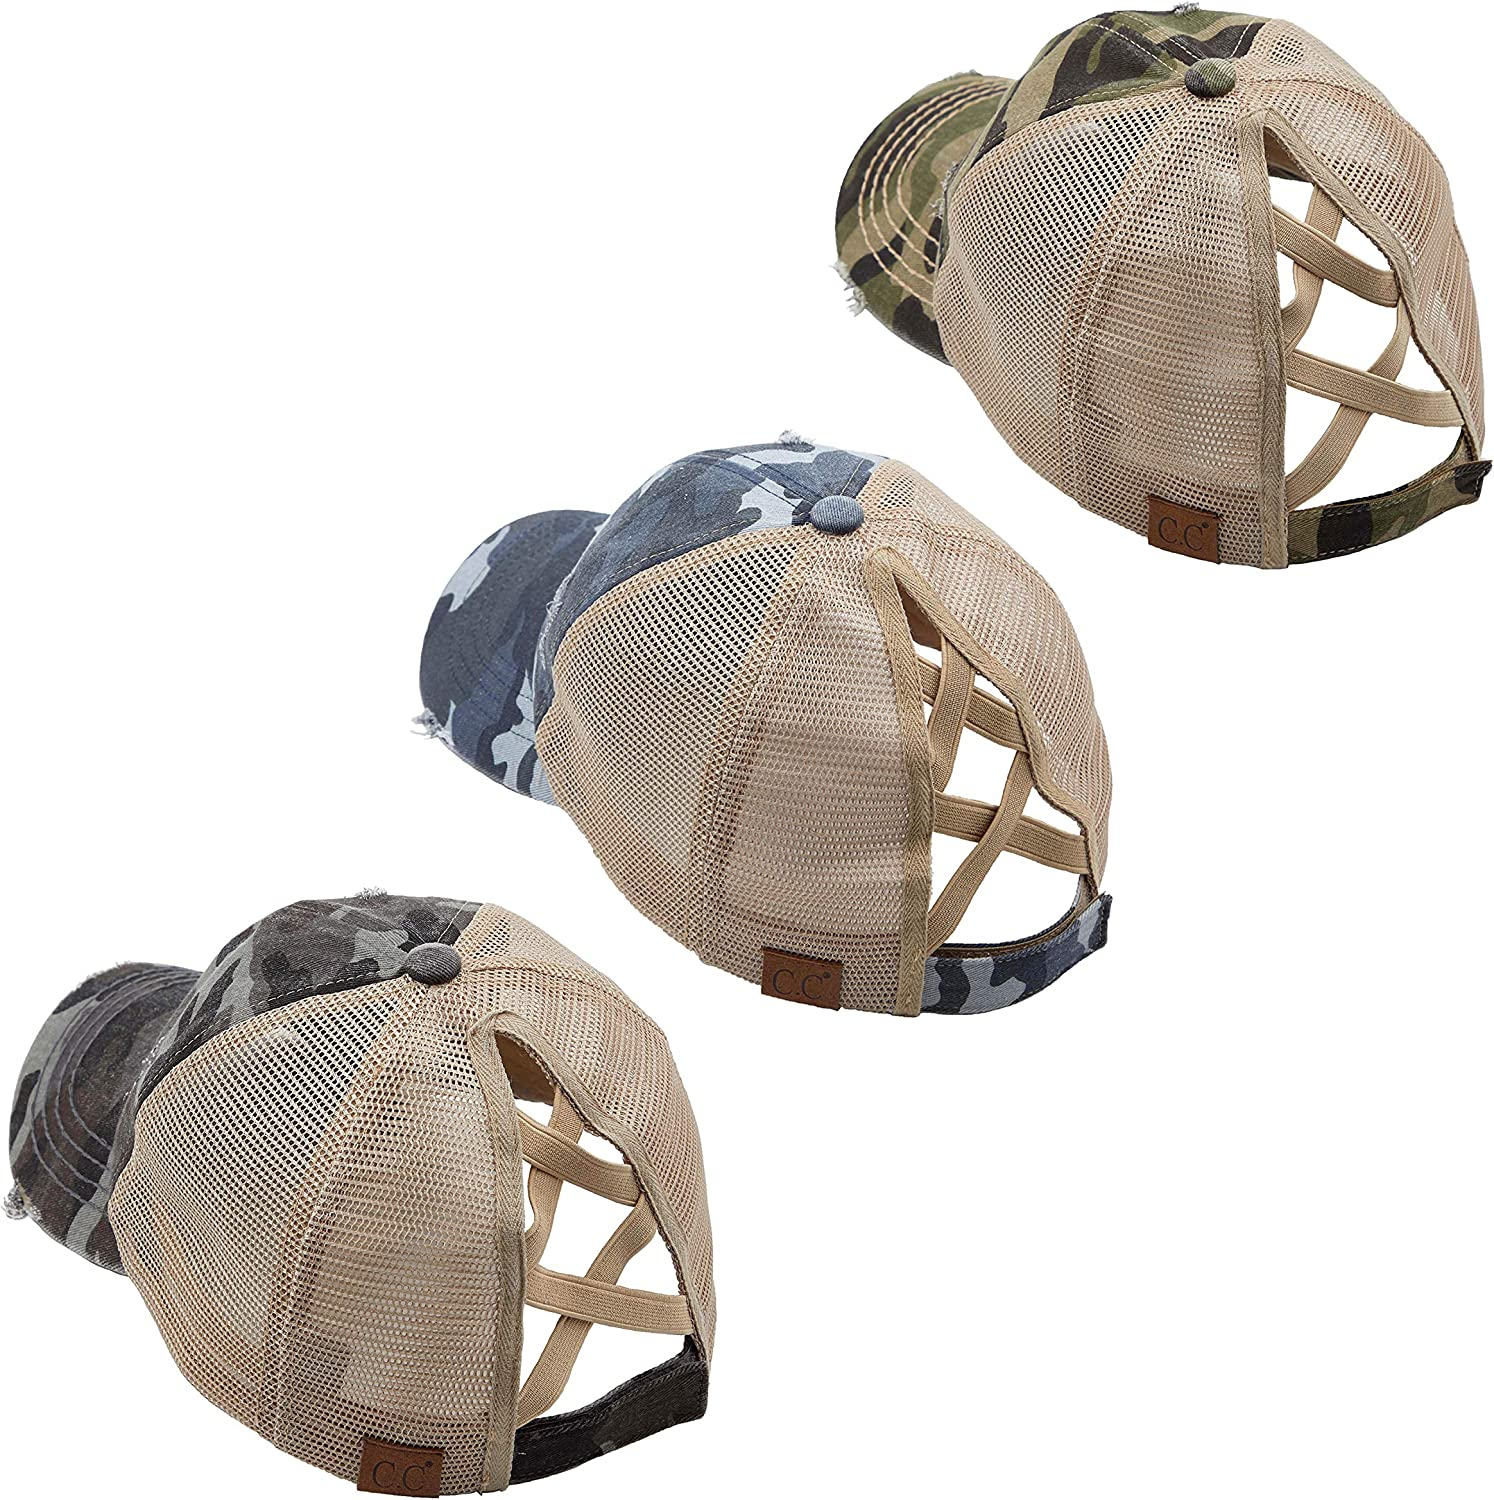 Funky Junque Criss Max 58% OFF Cross Hat Pony Baseball Cap Distressed Womens Attention brand